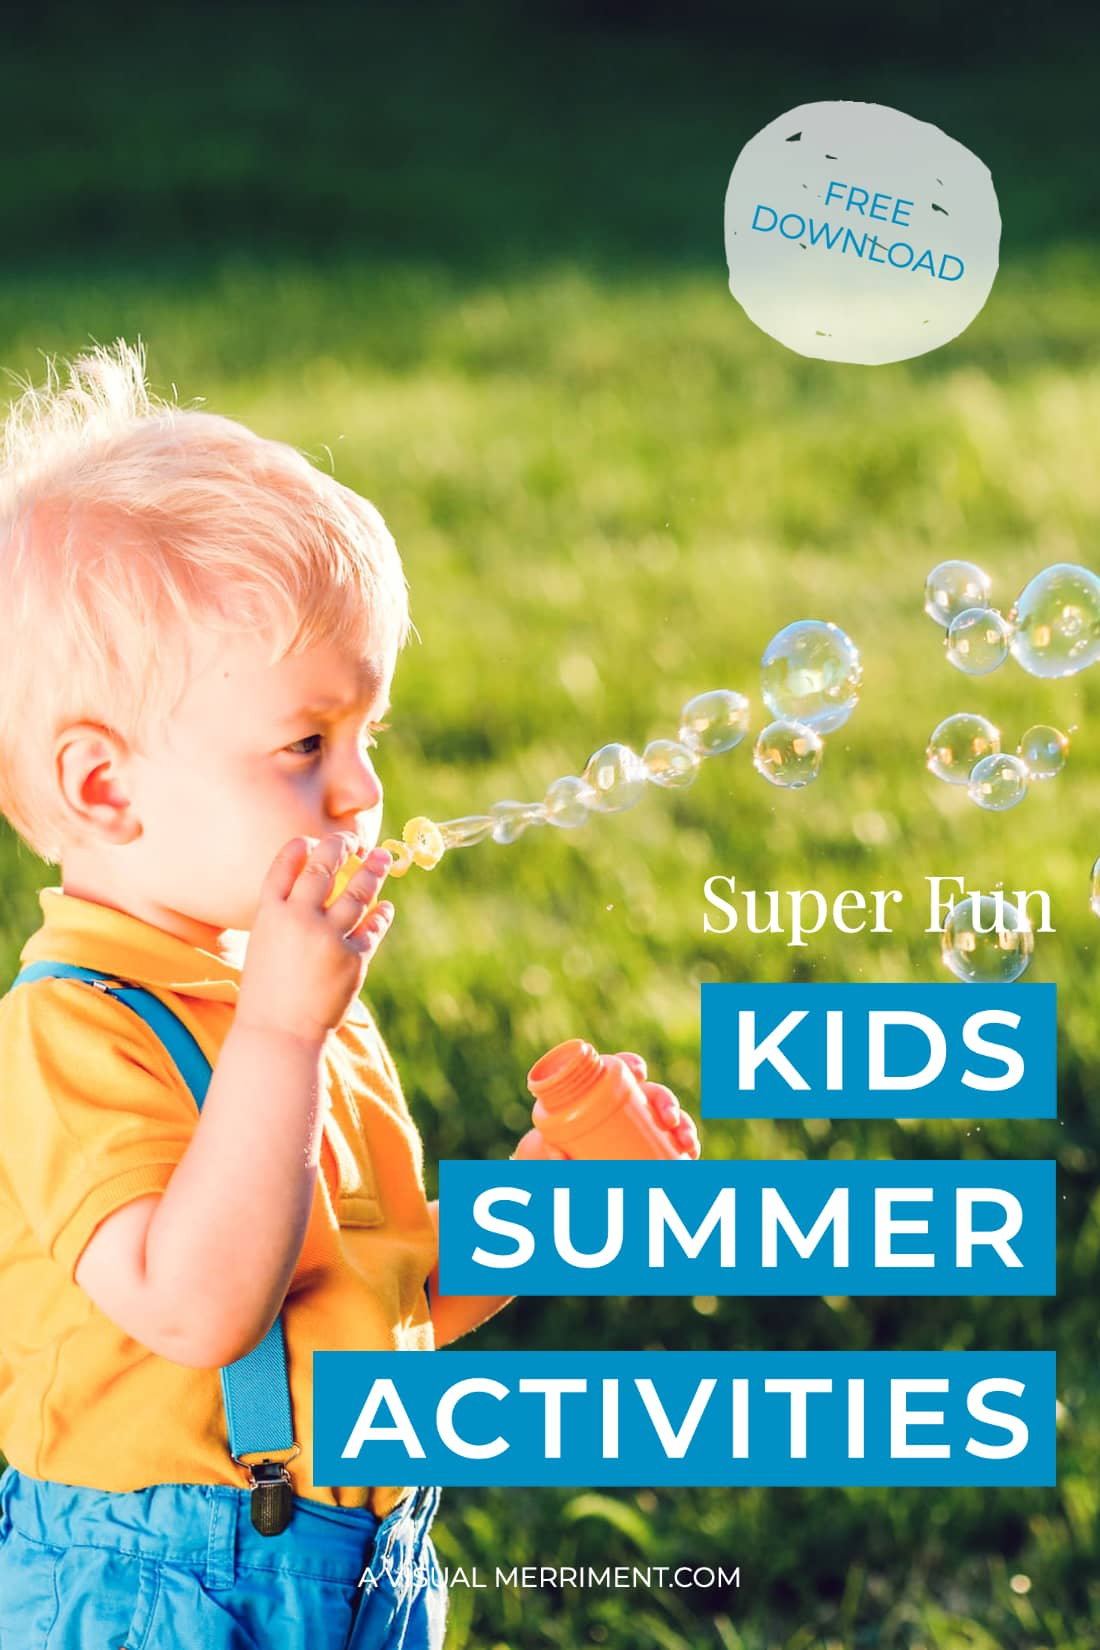 Kids outdoor summer activities